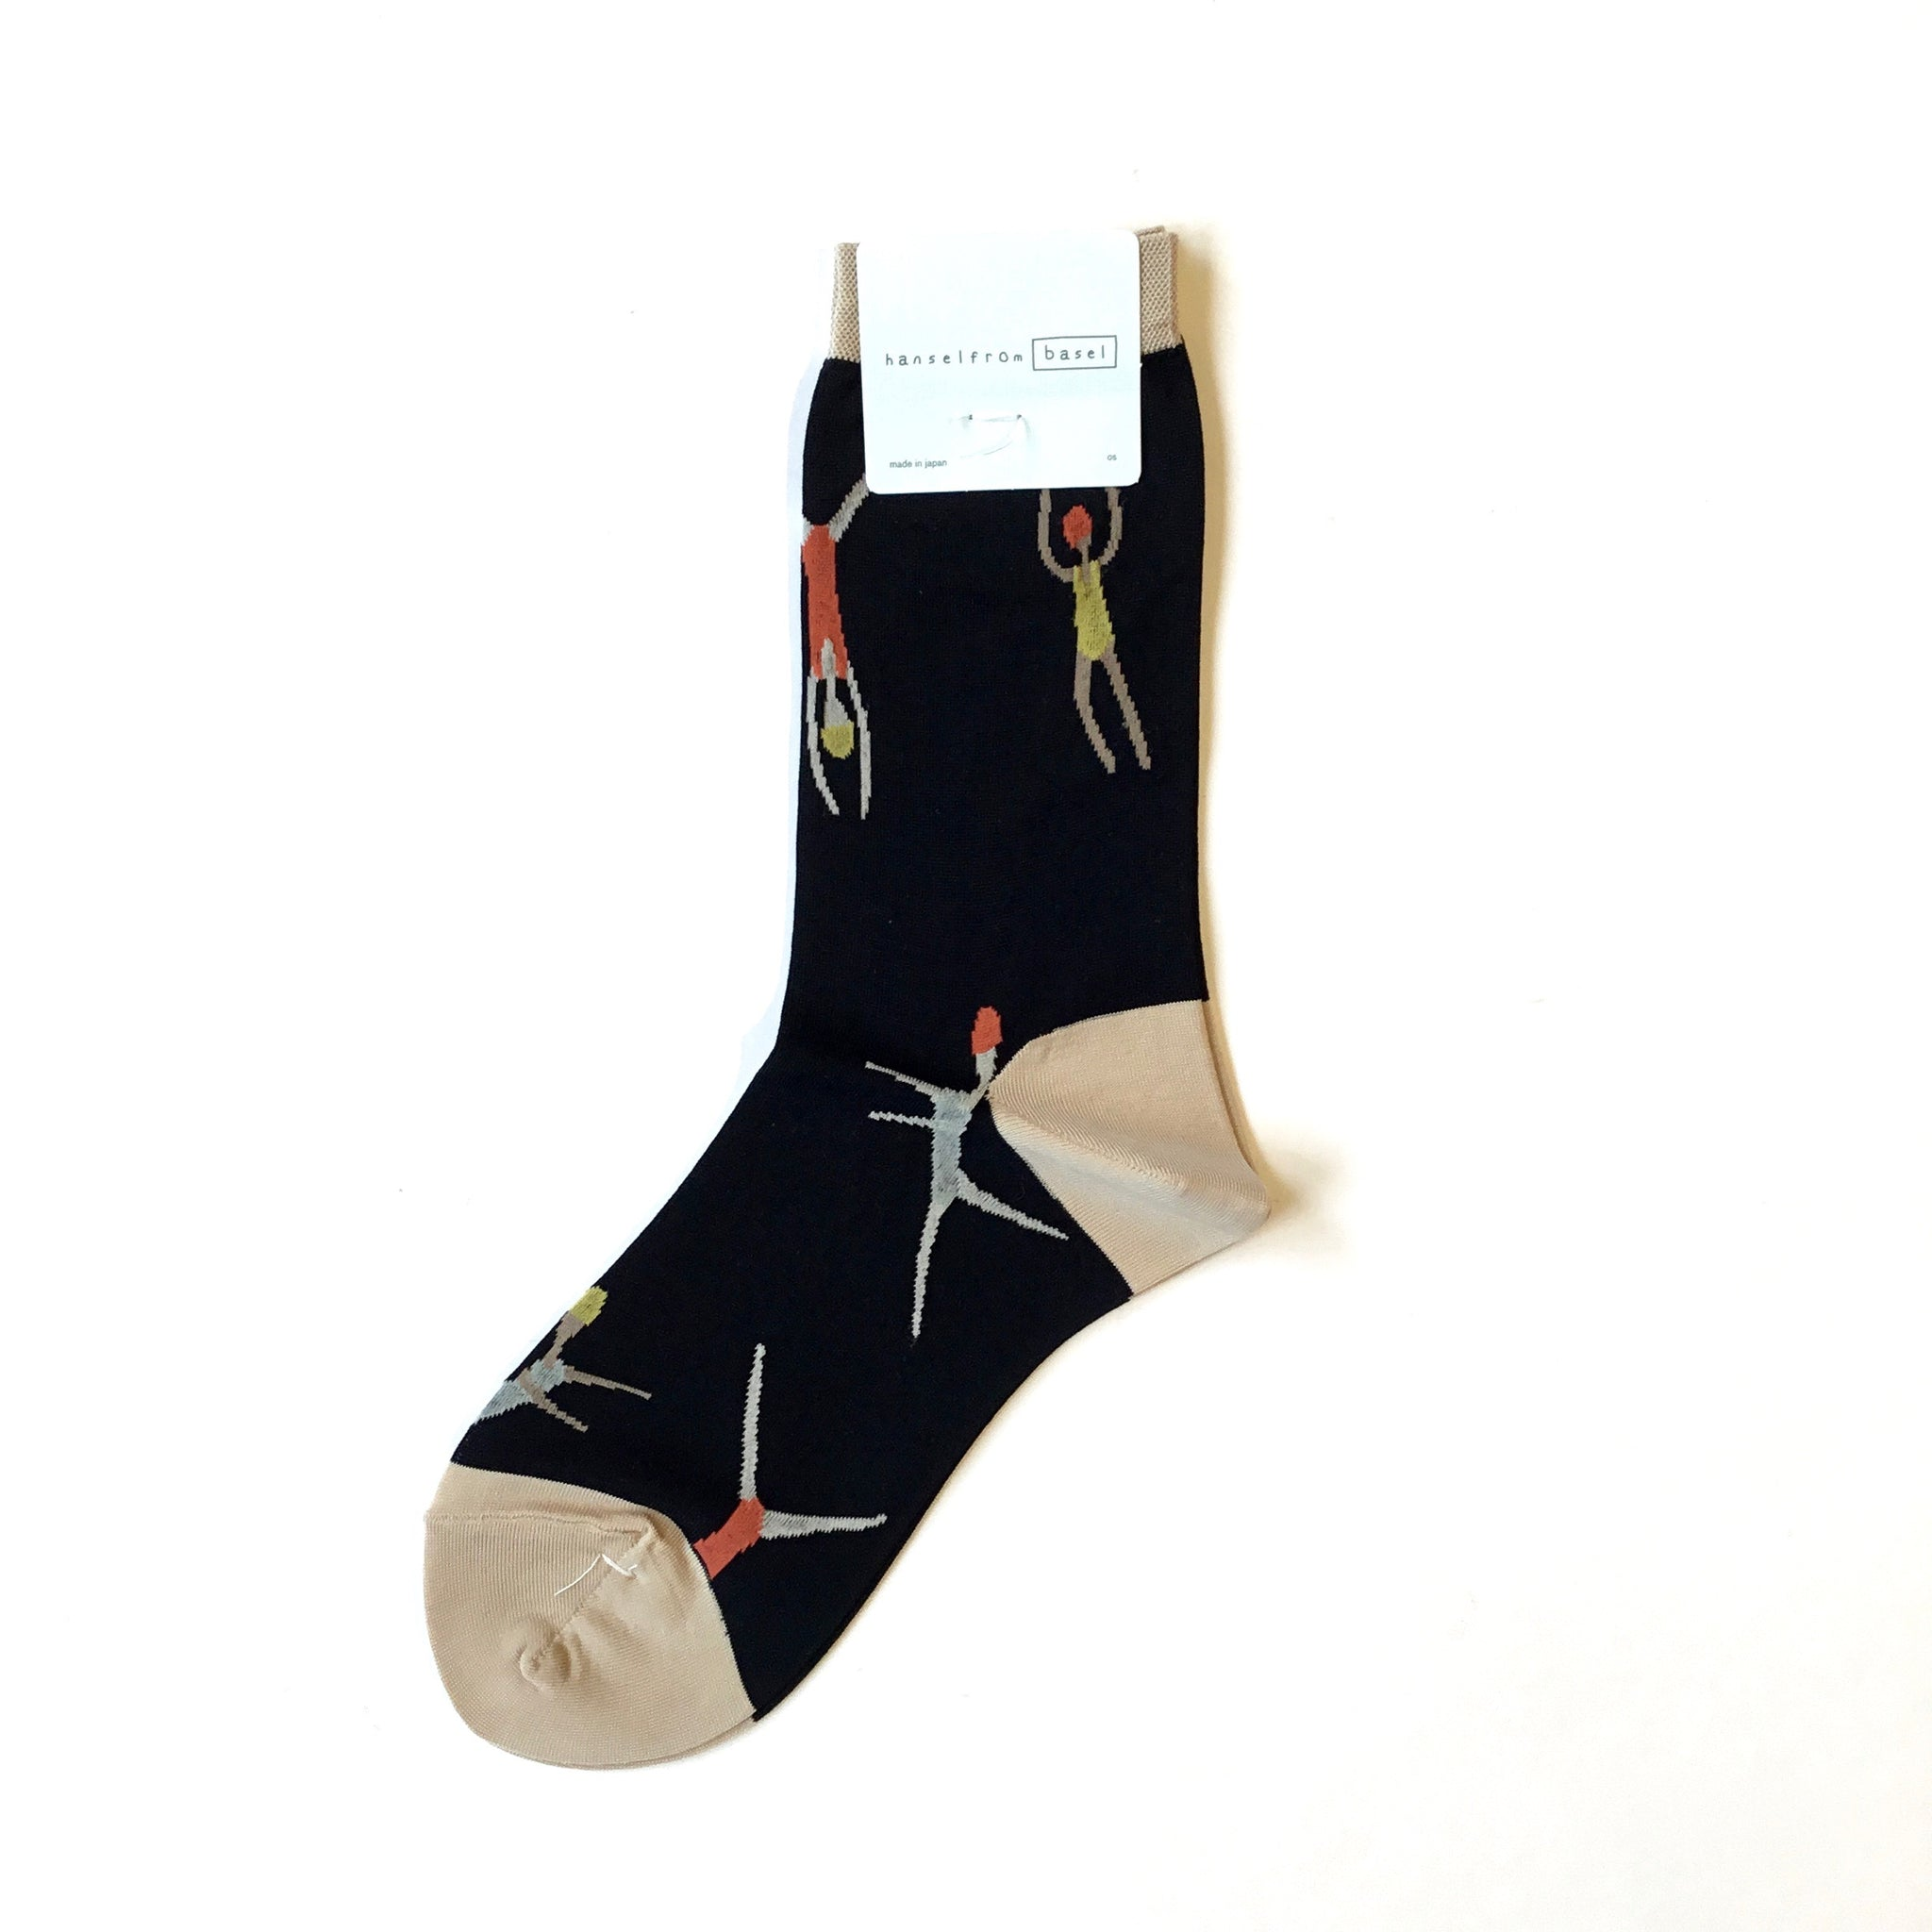 Hansel from Basel In-sync Socks (SOLD)